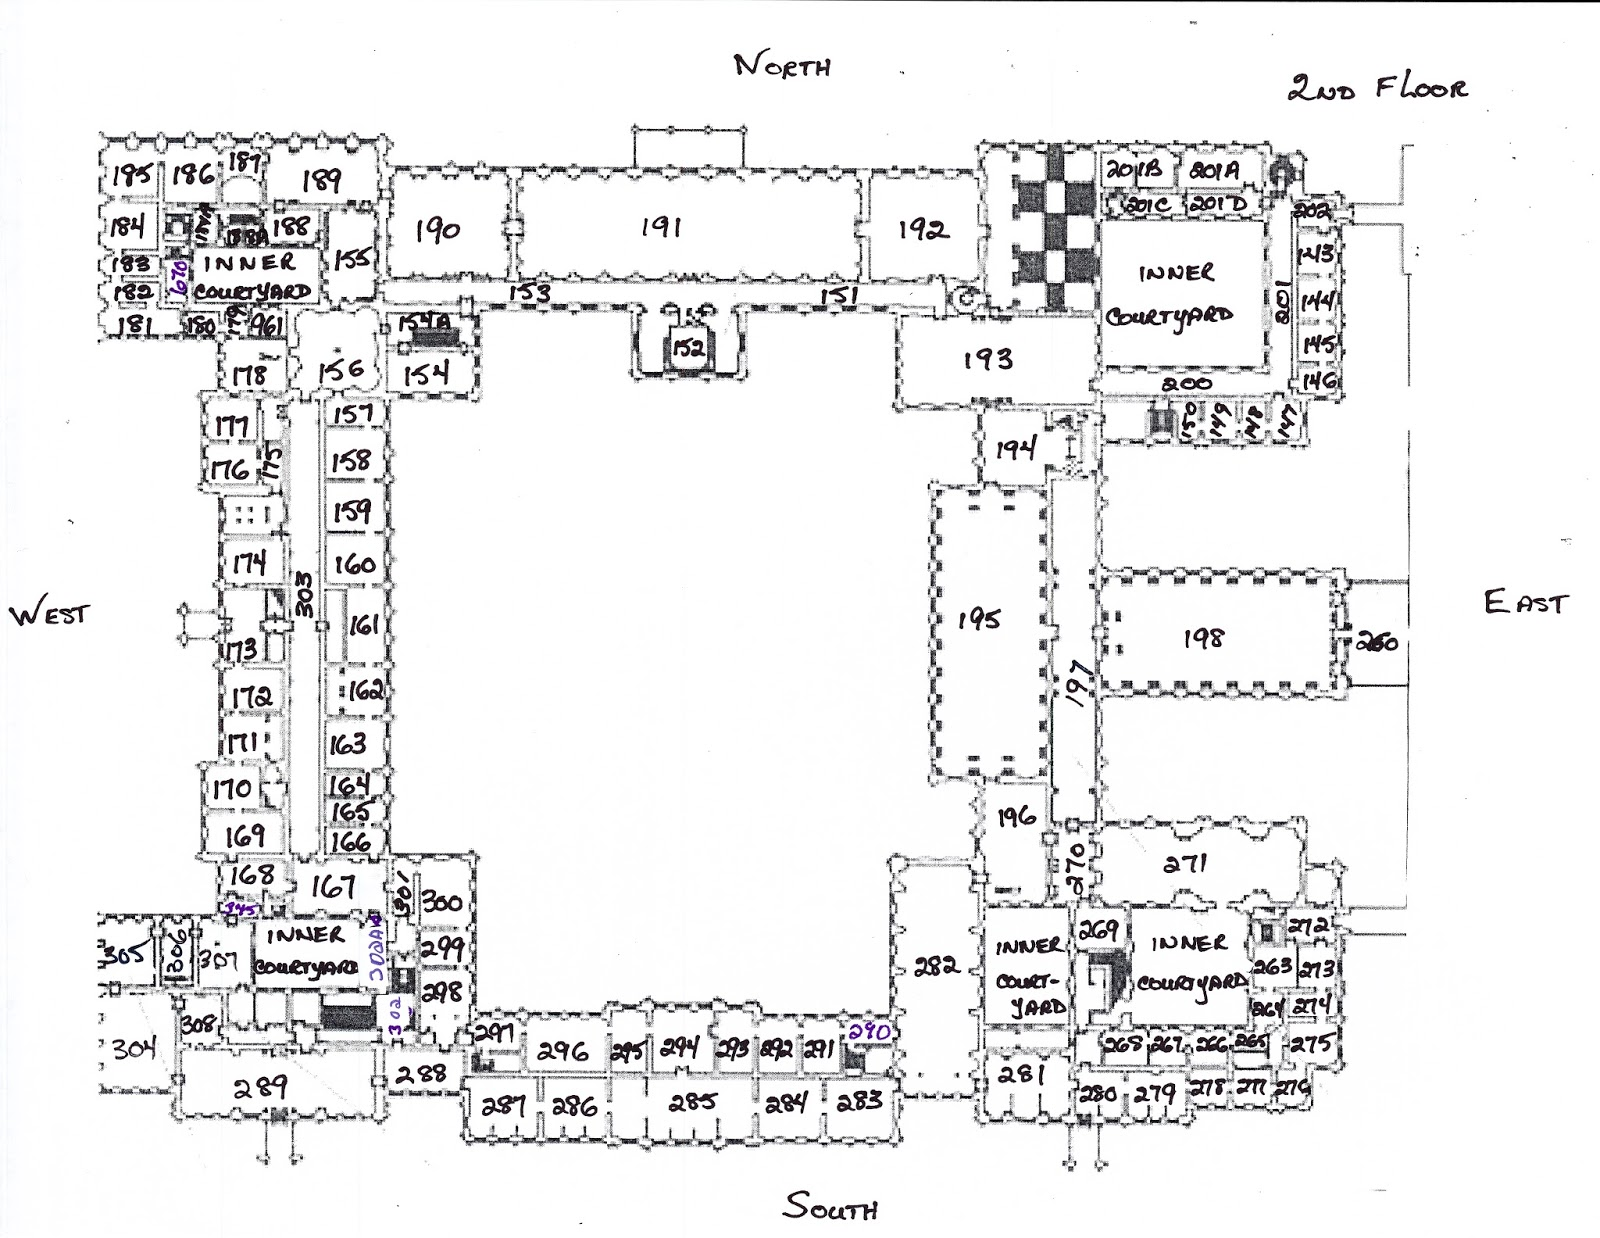 Winter Palace Research Plan List Of The 2nd Floor Of The Winter Palace